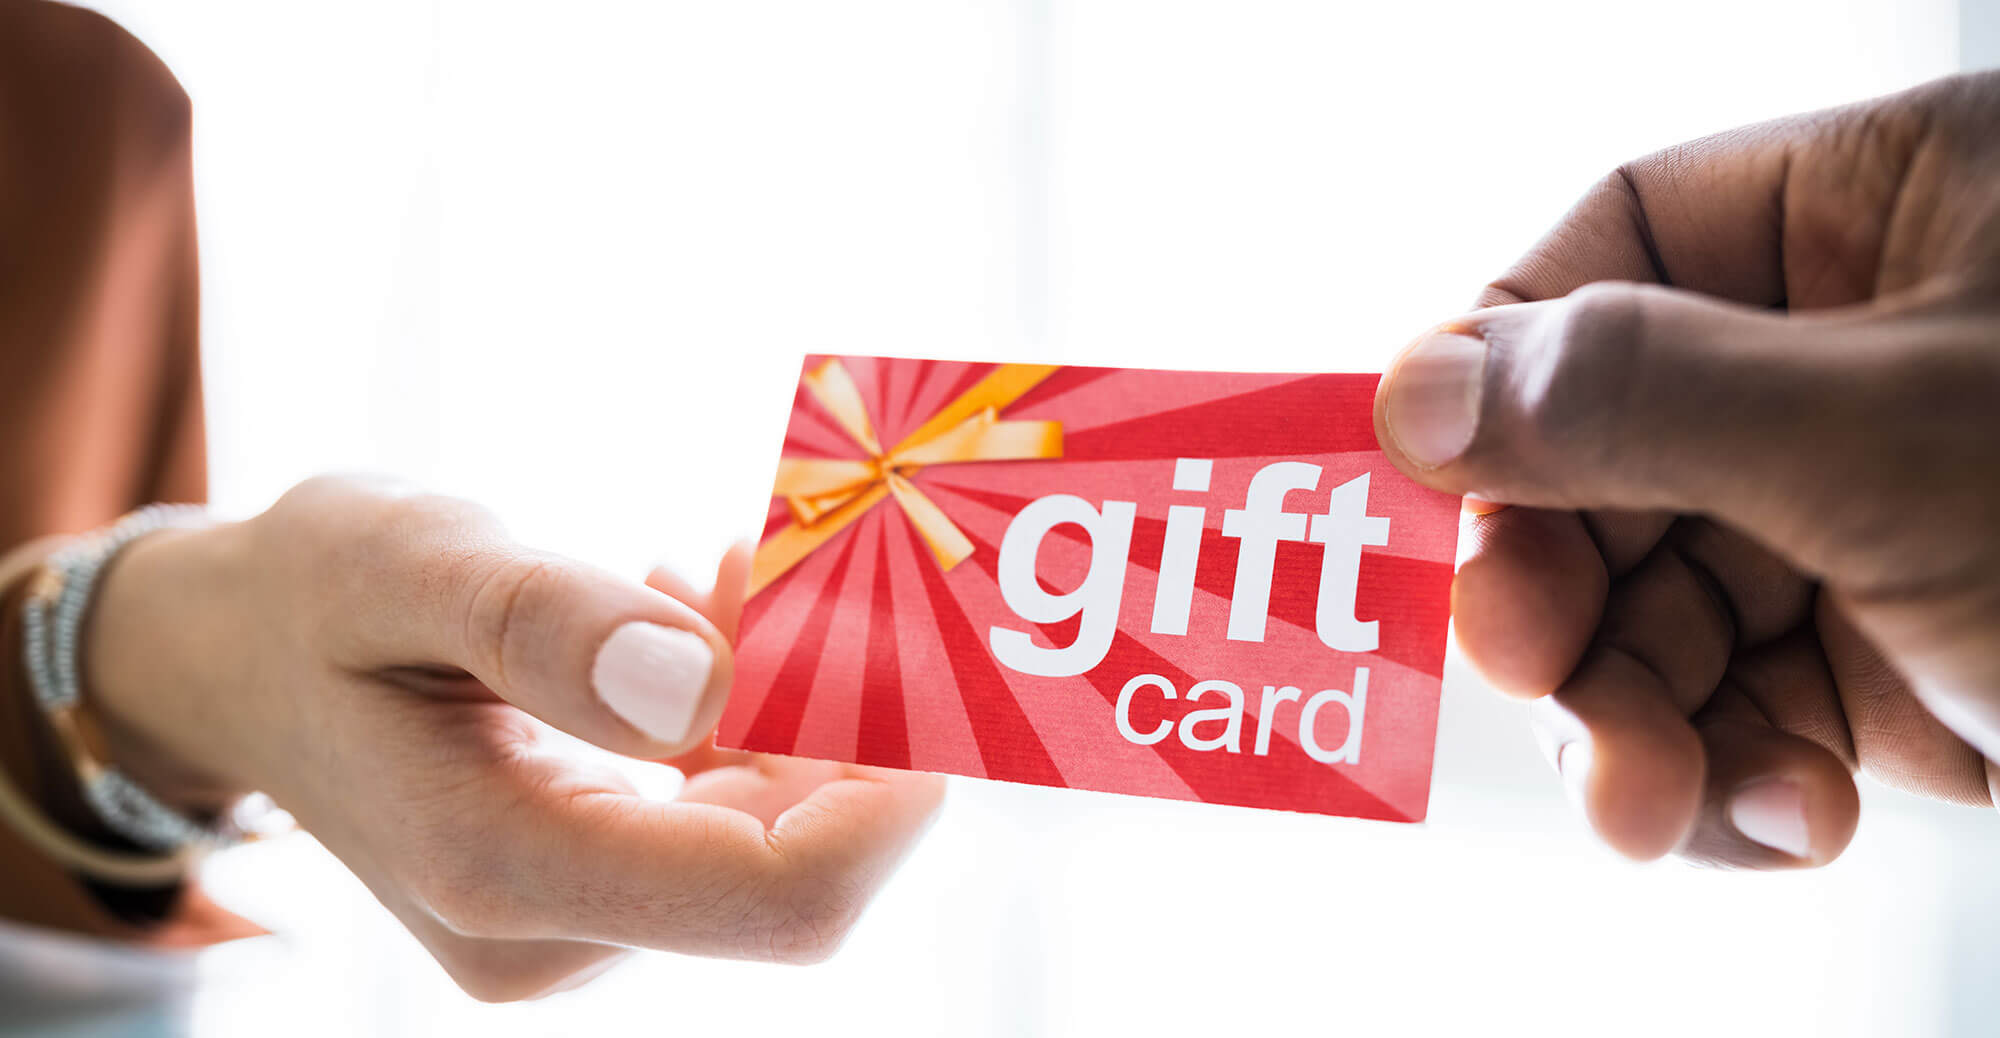 Employee Based Rewards - Gift Cards: What You Need to Know